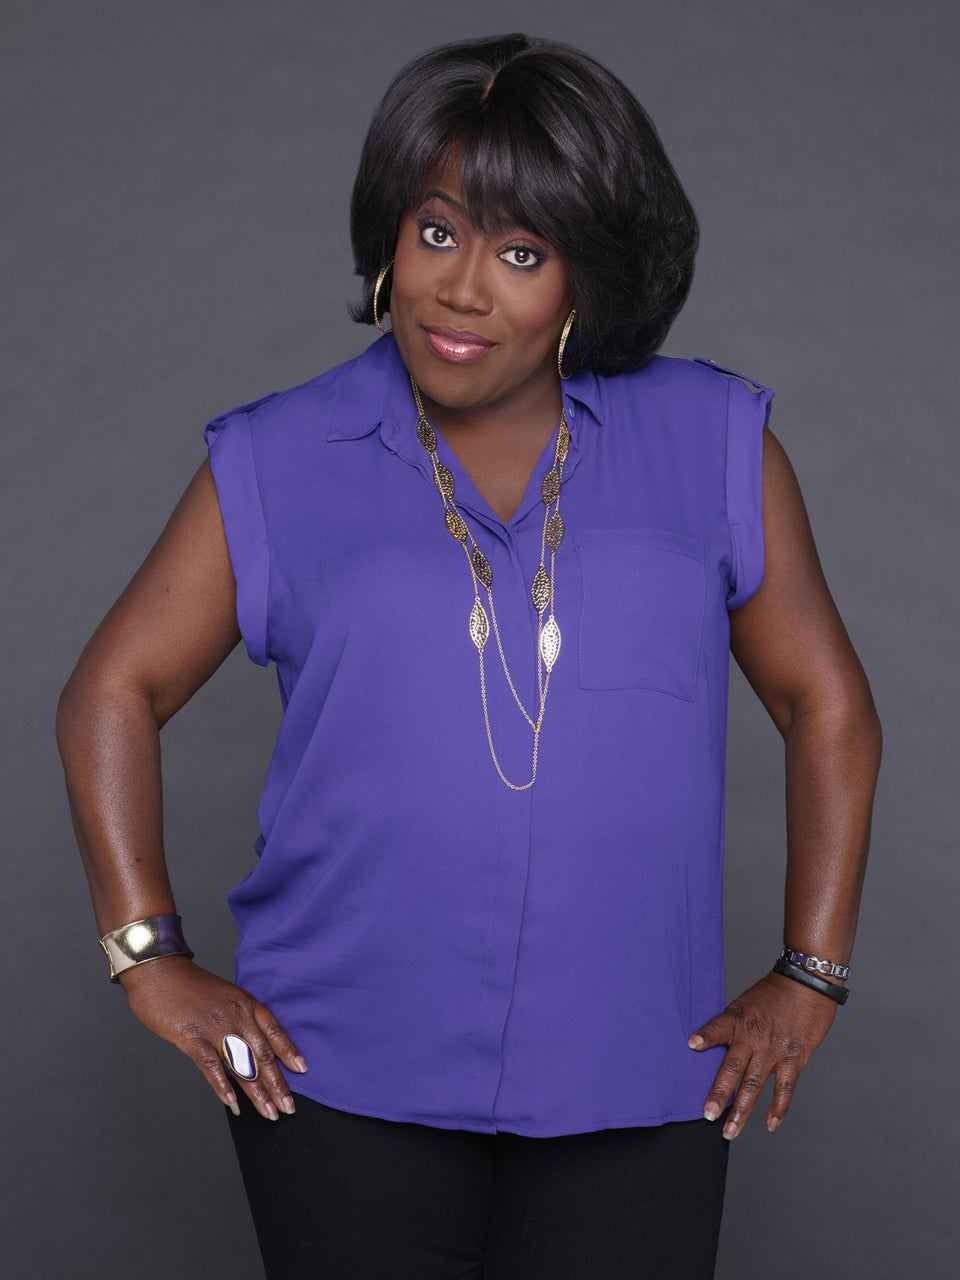 Sheryl Underwood Reveals Natural Hair, Apologizes For Hurtful Remarks